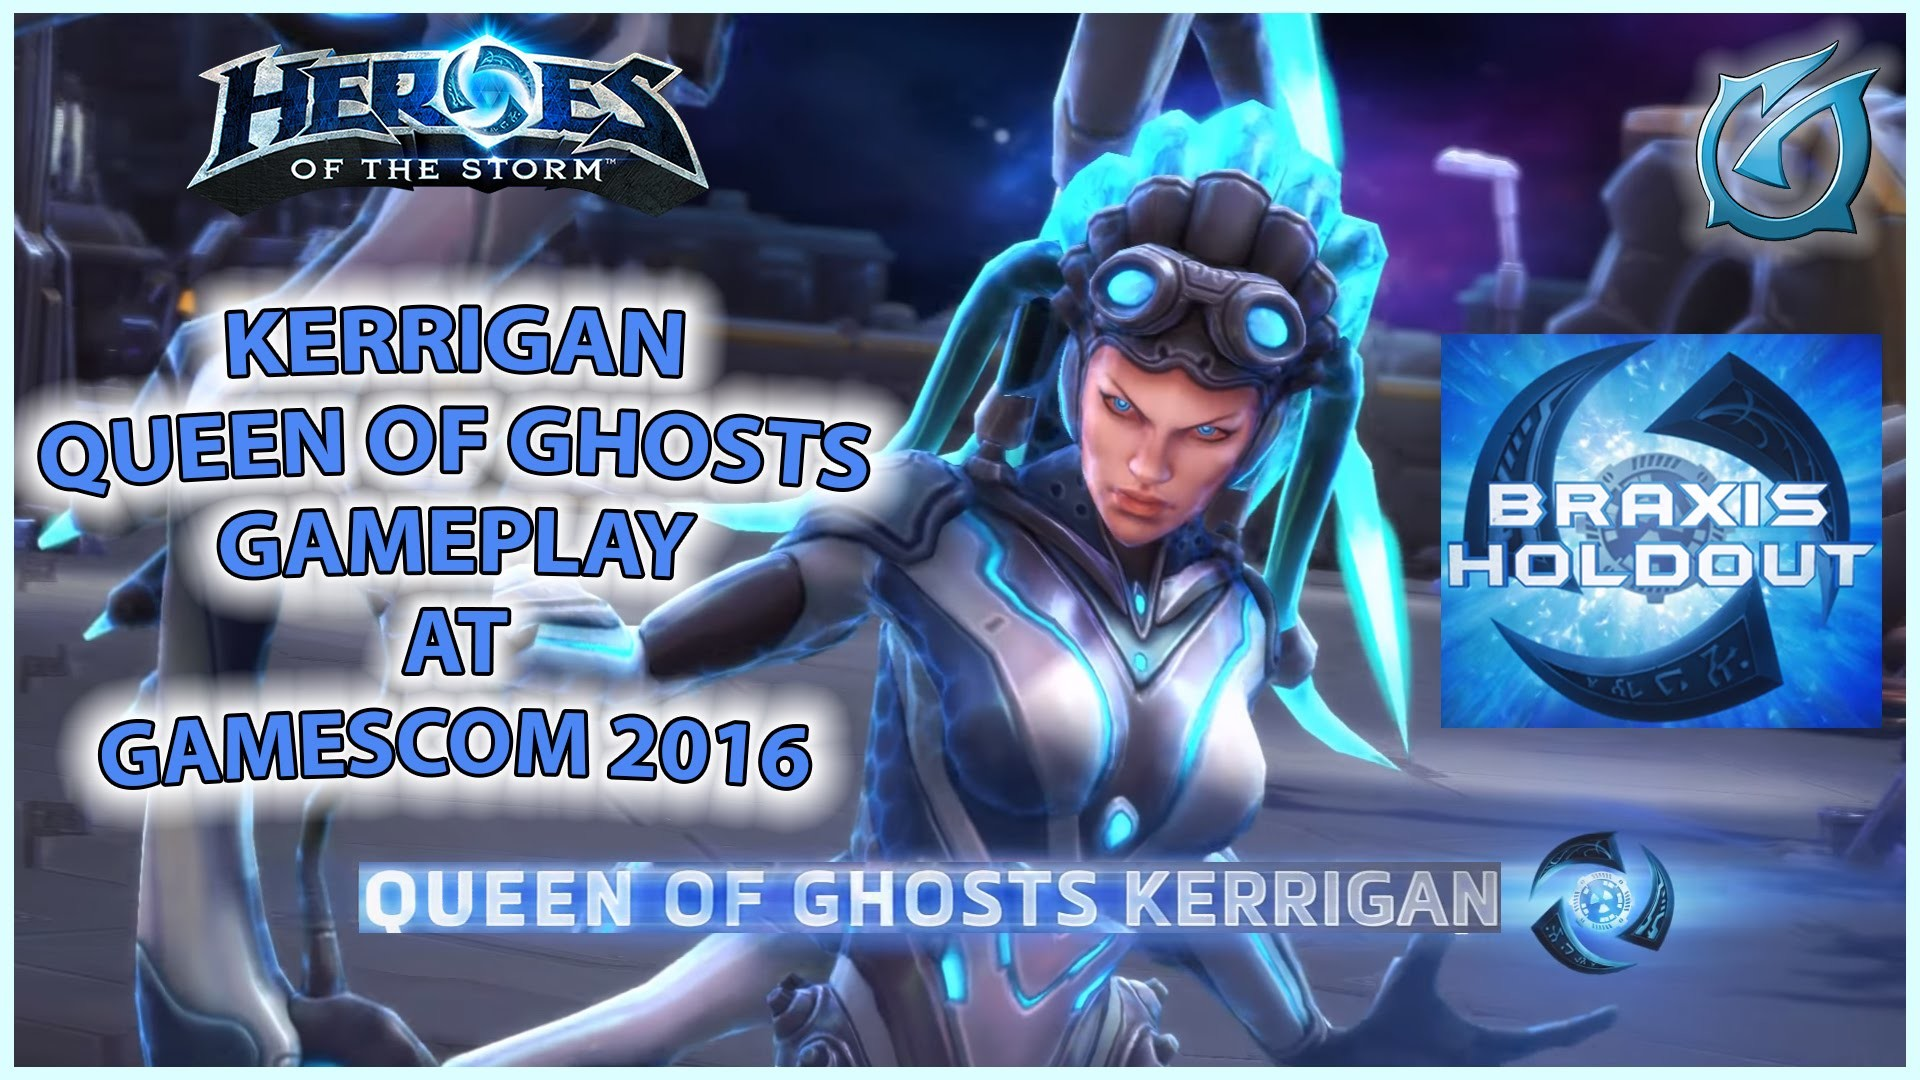 Res: 1920x1080, Grubby   Heroes of the Storm   Kerrigan - Queen of Ghosts - Braxis Holdout  at Gamescom 2016 - YouTube